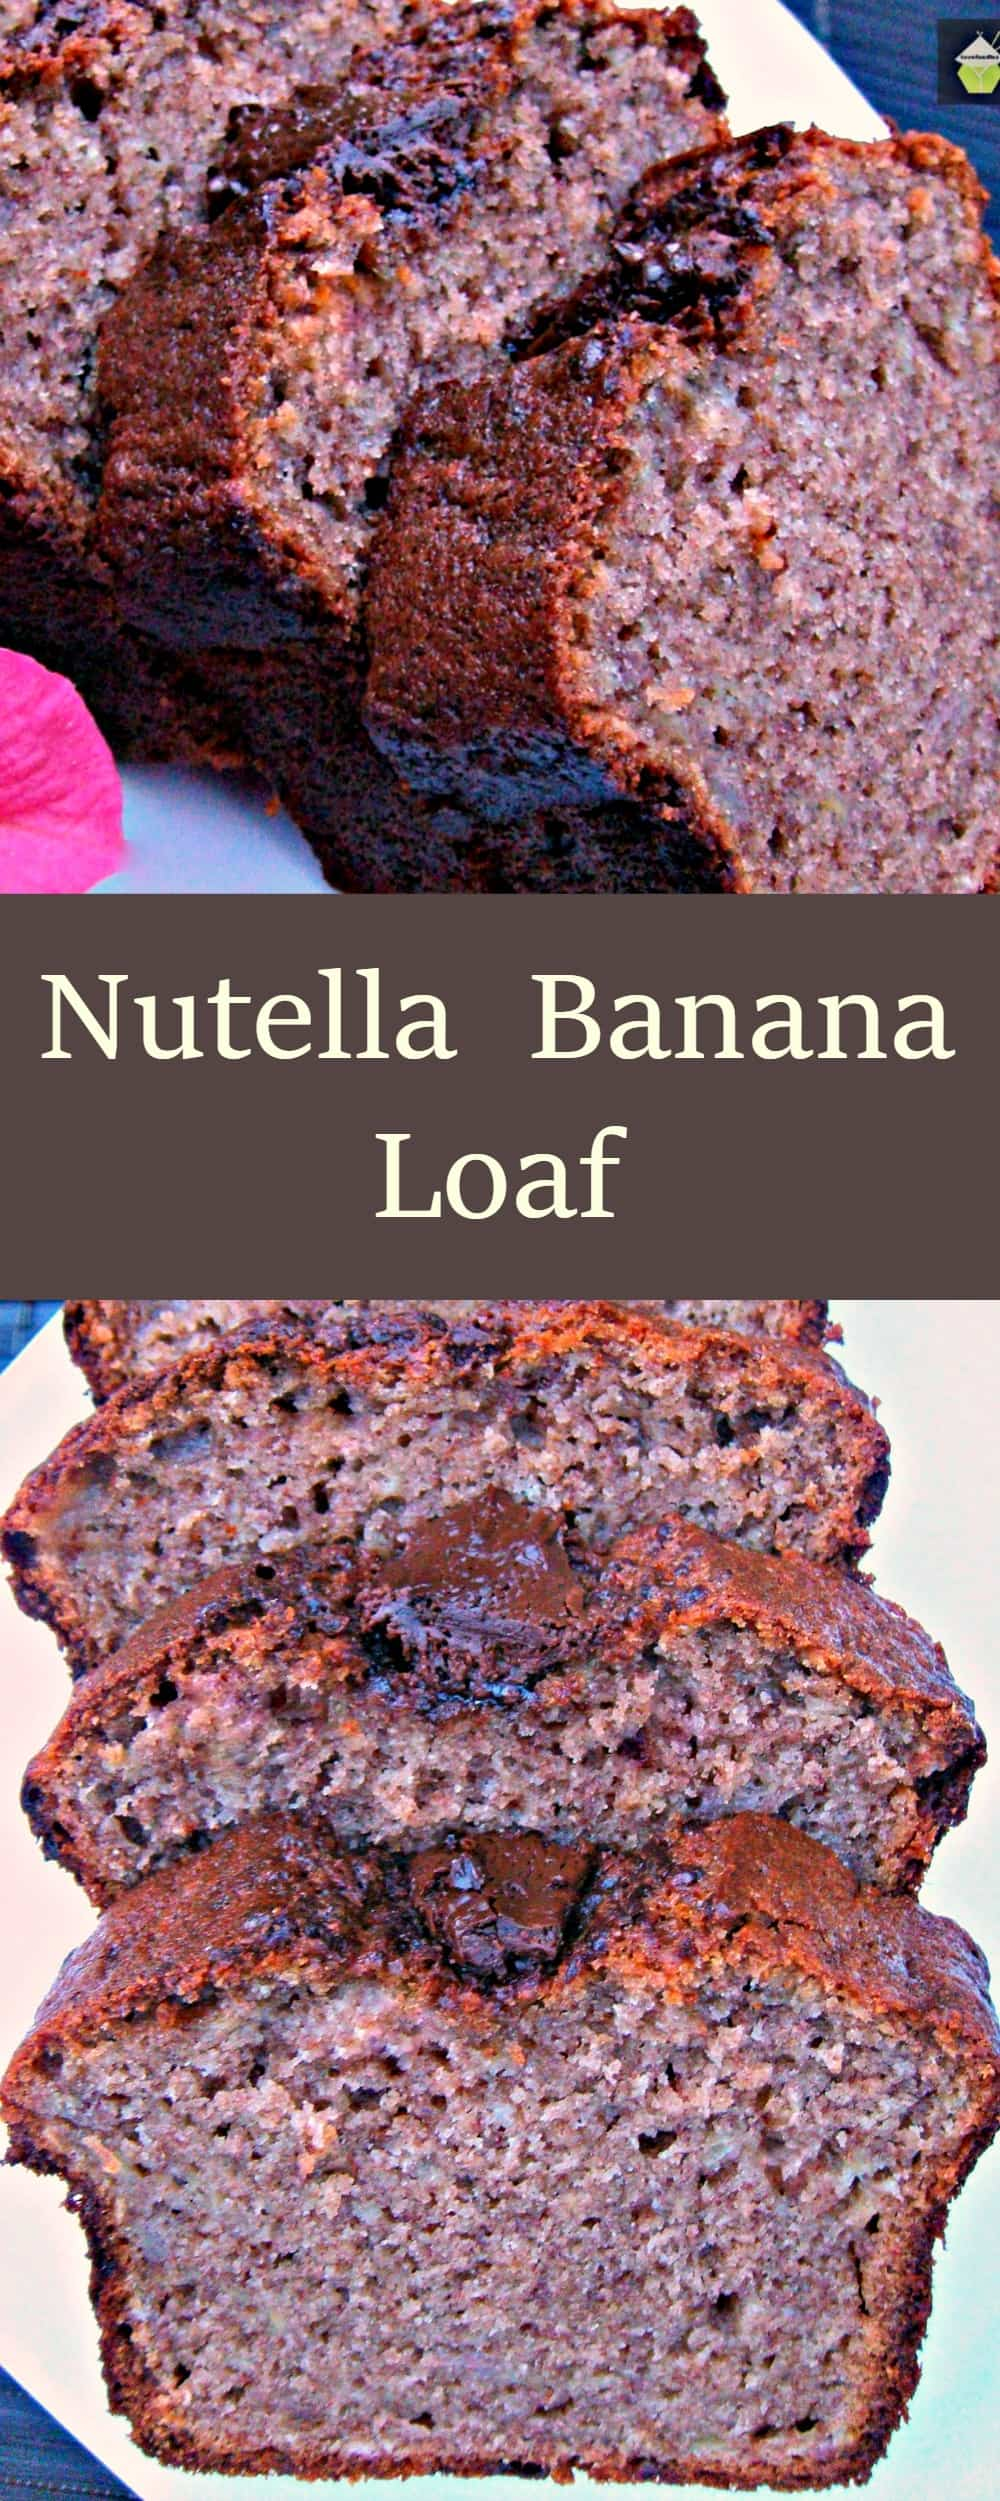 Nutella Banana Loaf. Delicious, soft pound cake with banana and Nutella chocolate. Easy recipe and very popular. Great tasting cake #cake #Nutella #chocolate